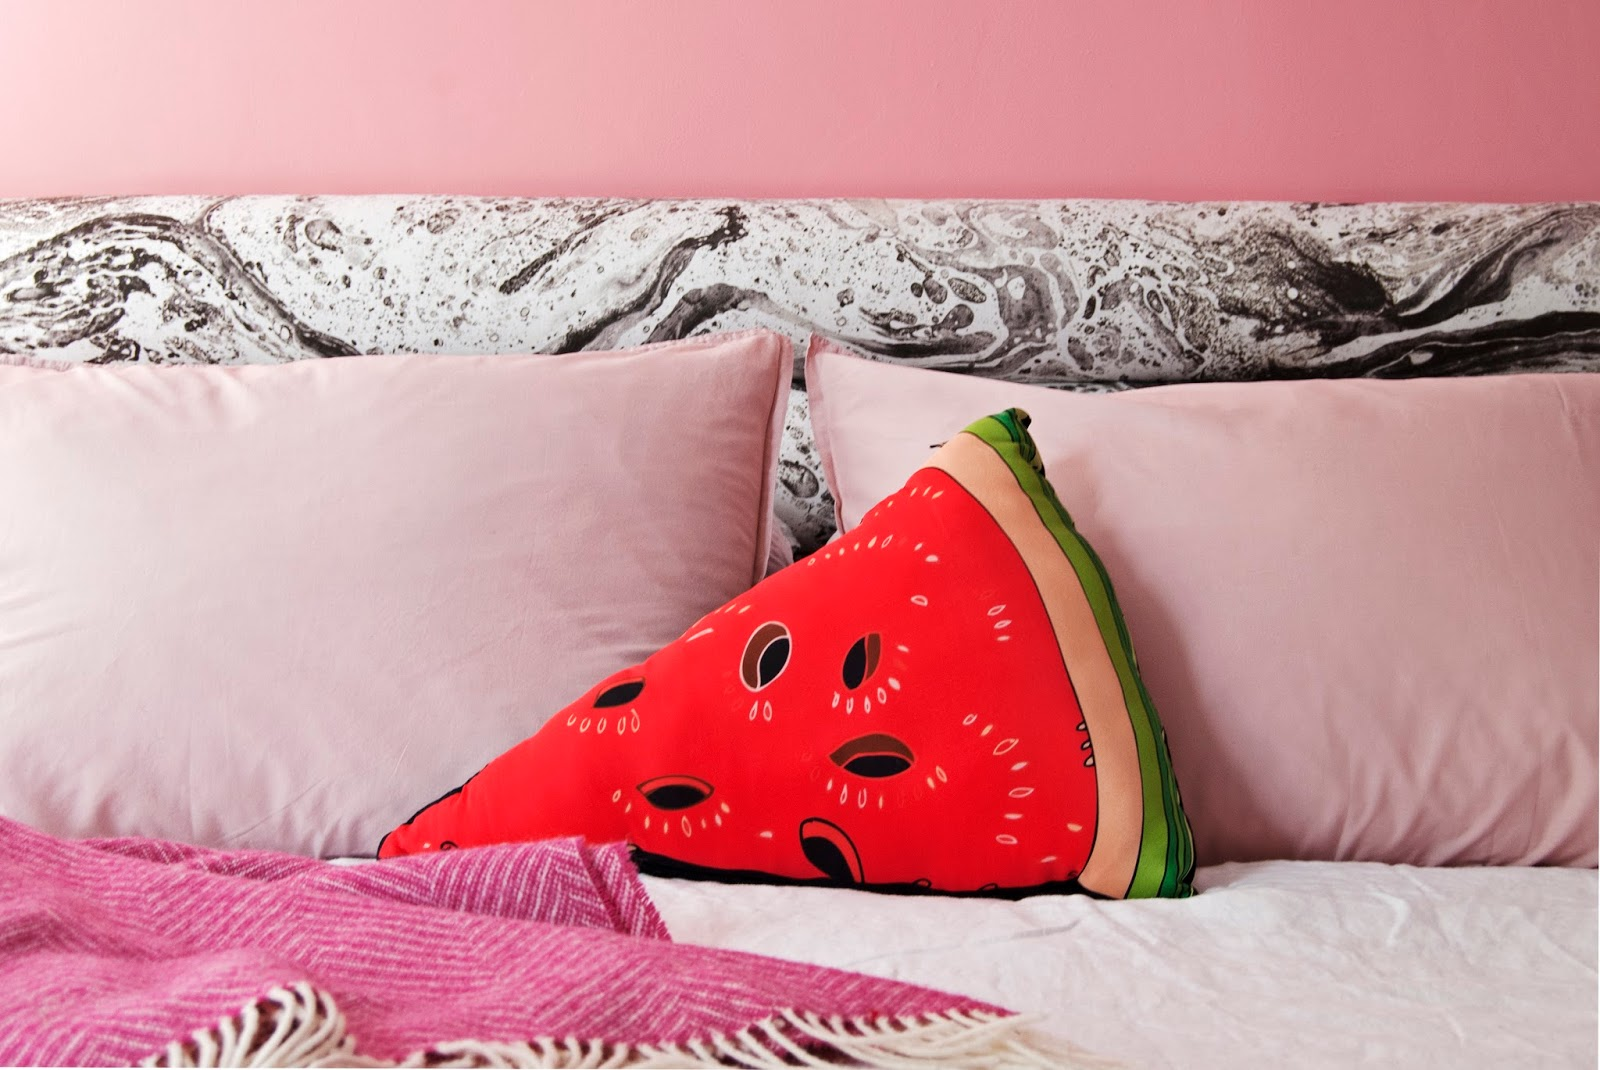 Amara Shoppable Home Inspiration Pages - French For Pineapple Blog - Bedroom with pink walls, marbled headboard and watermelon cushion